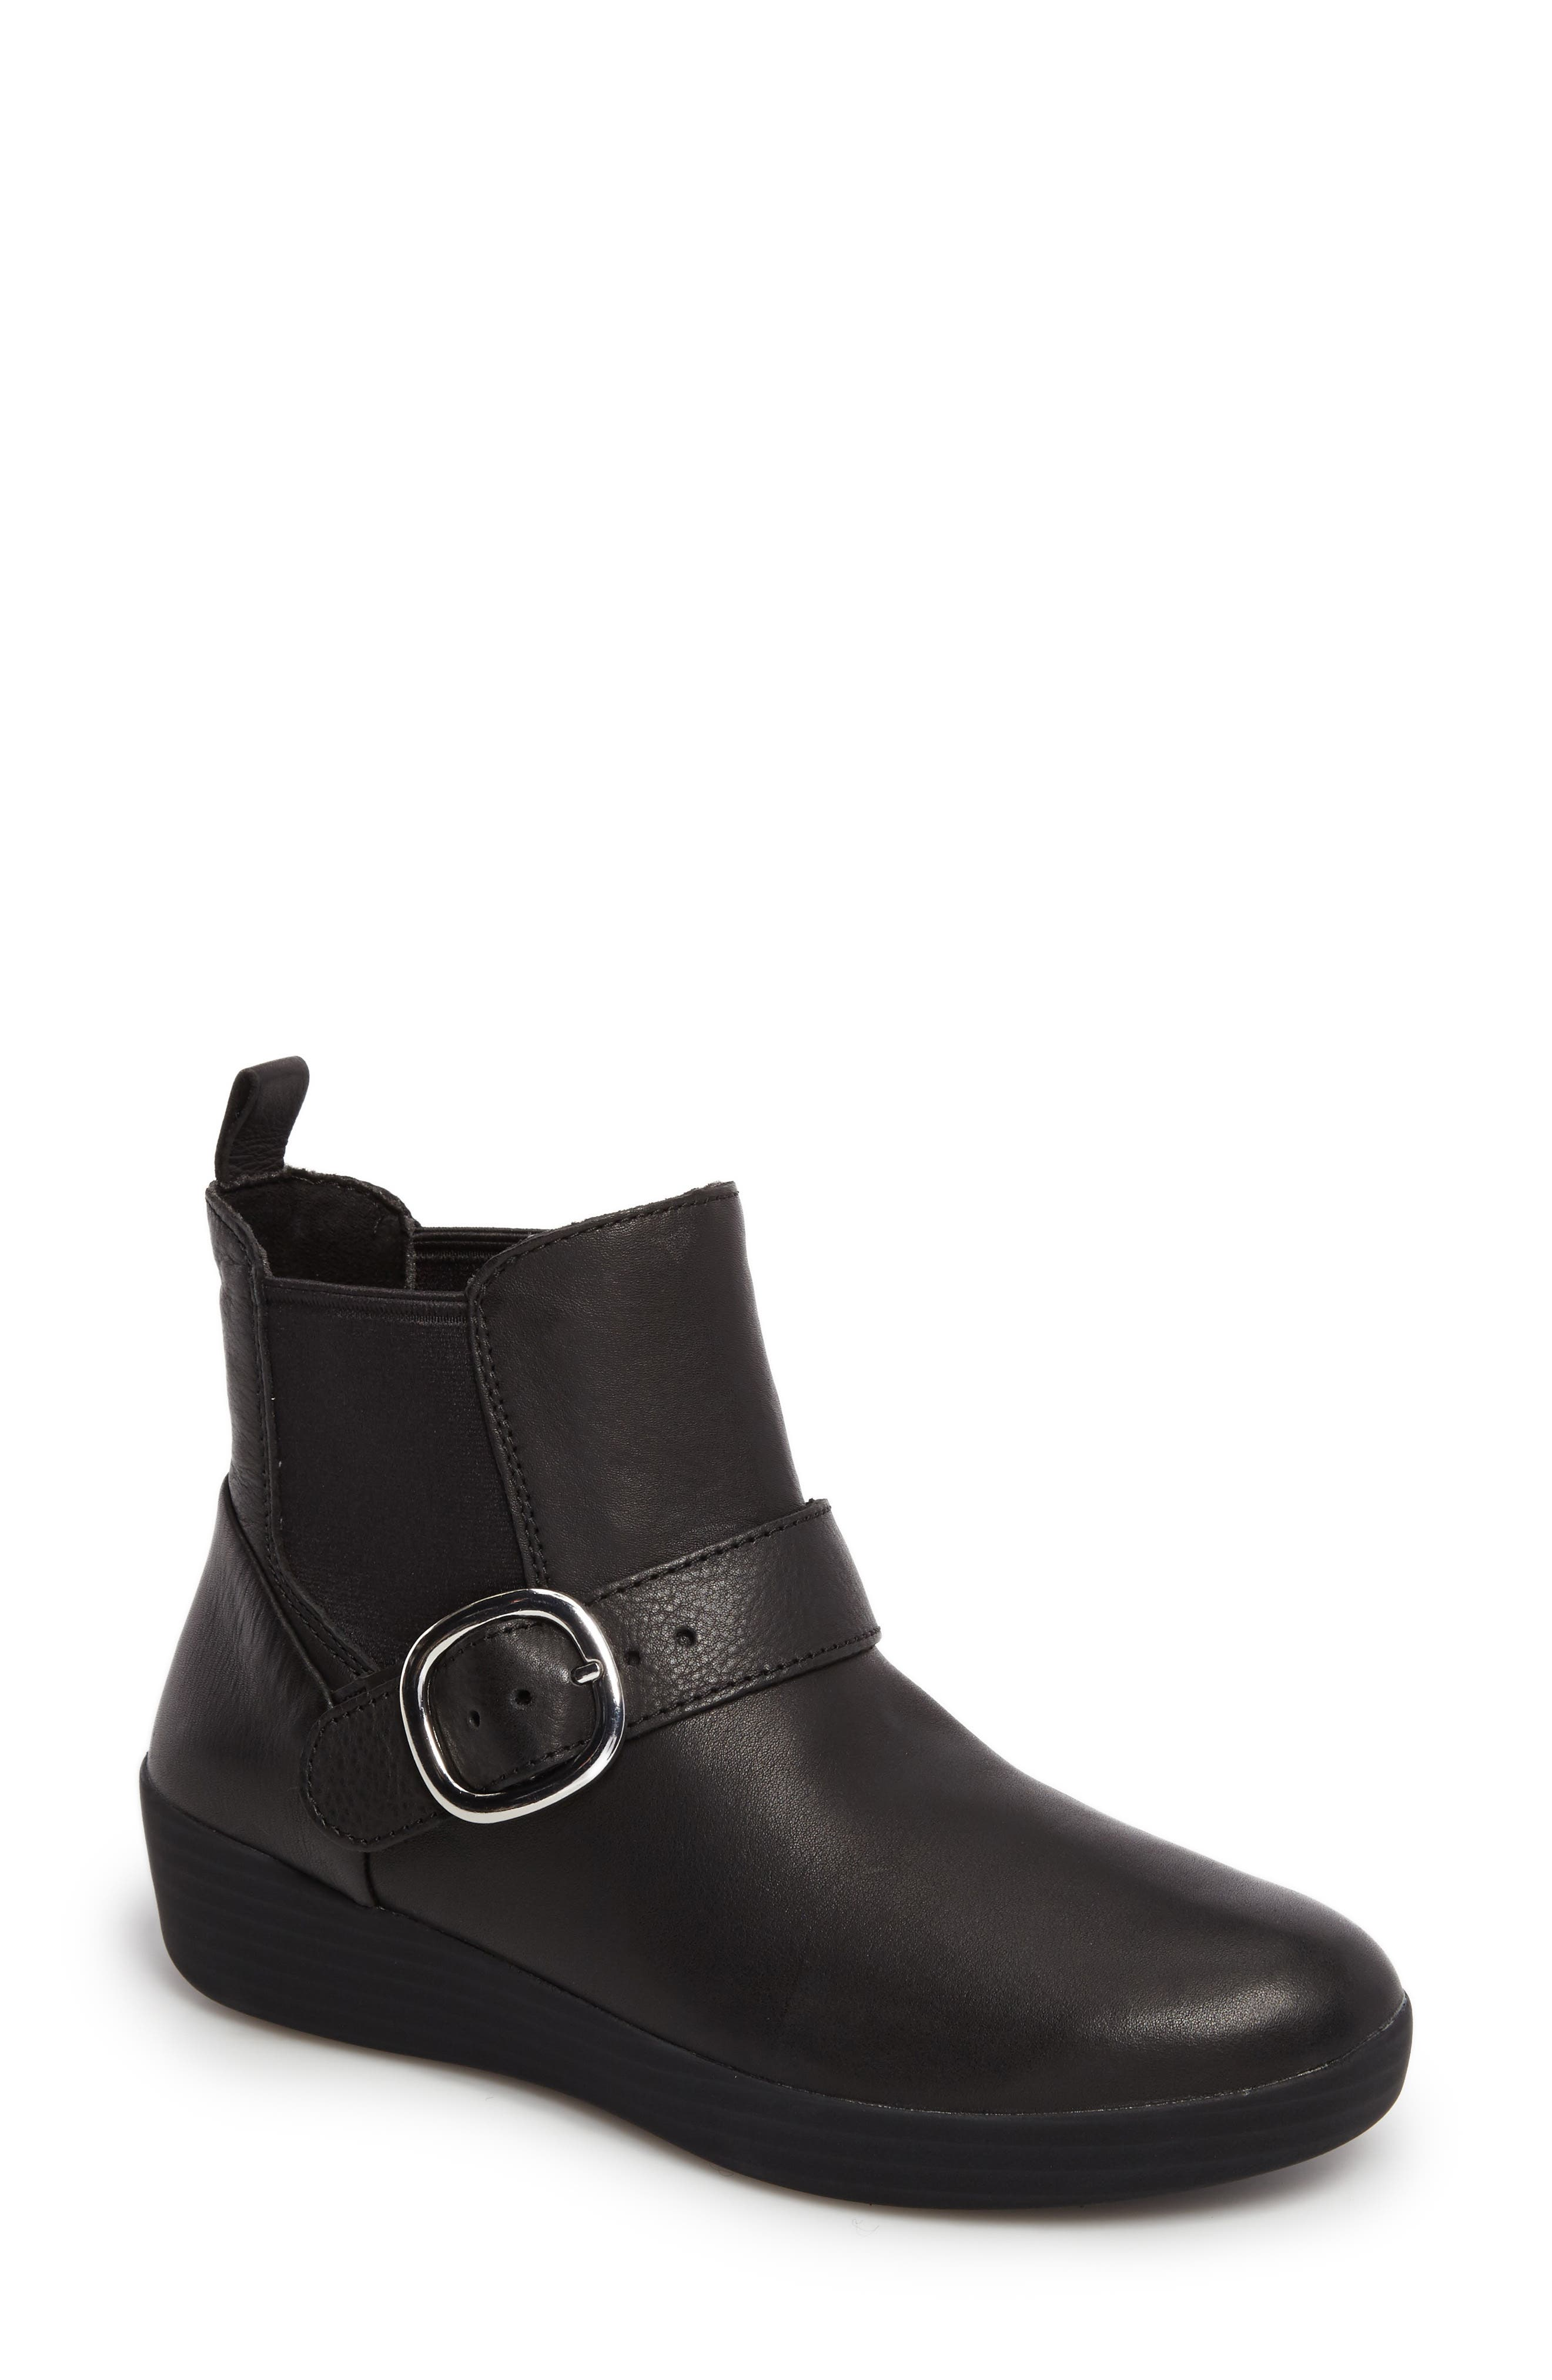 Superbuckle Chelsea Boot,                         Main,                         color, 001